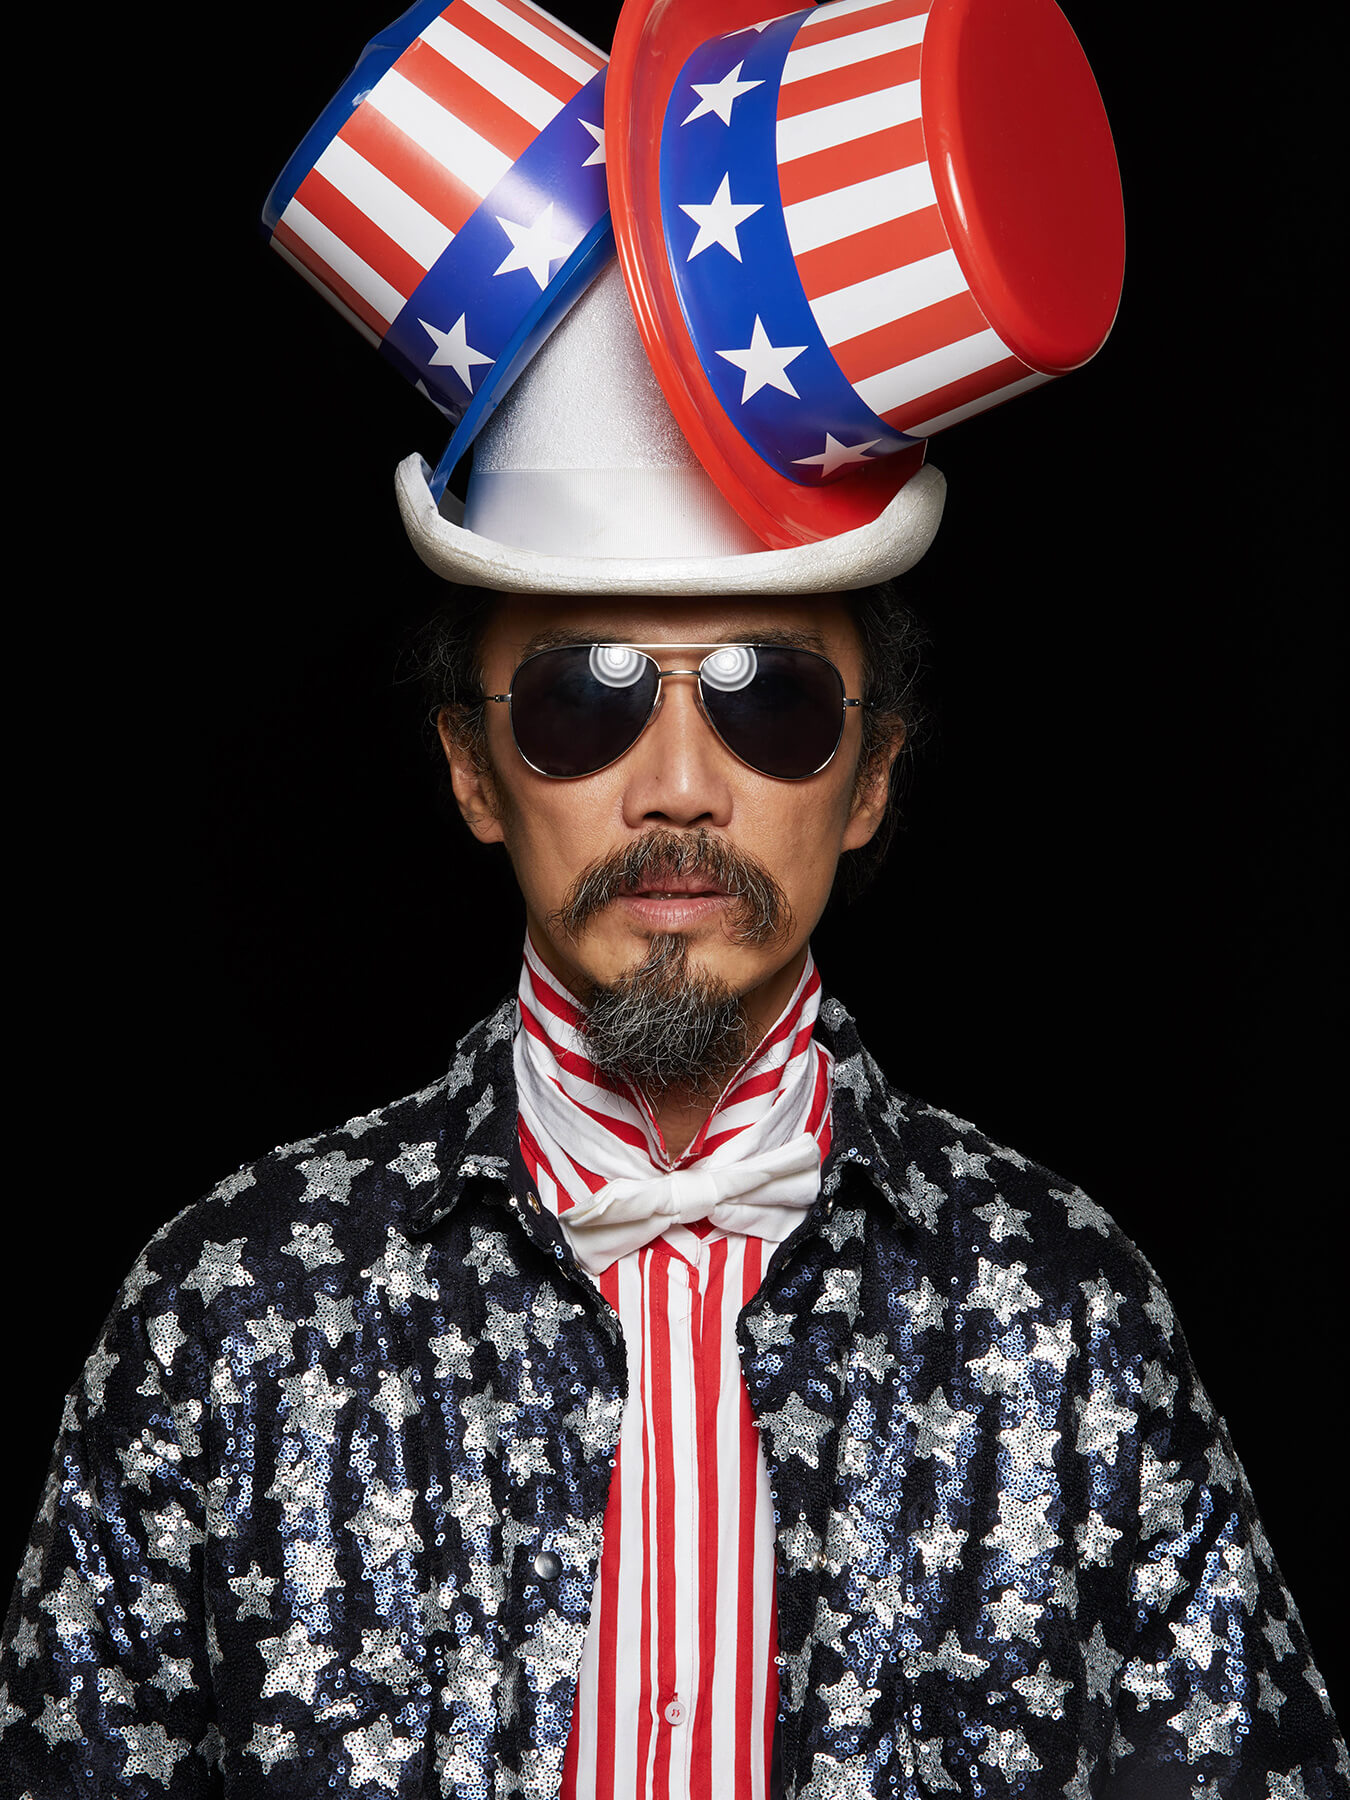 13 Sep 2017: Derong is styled as Uncle Sam